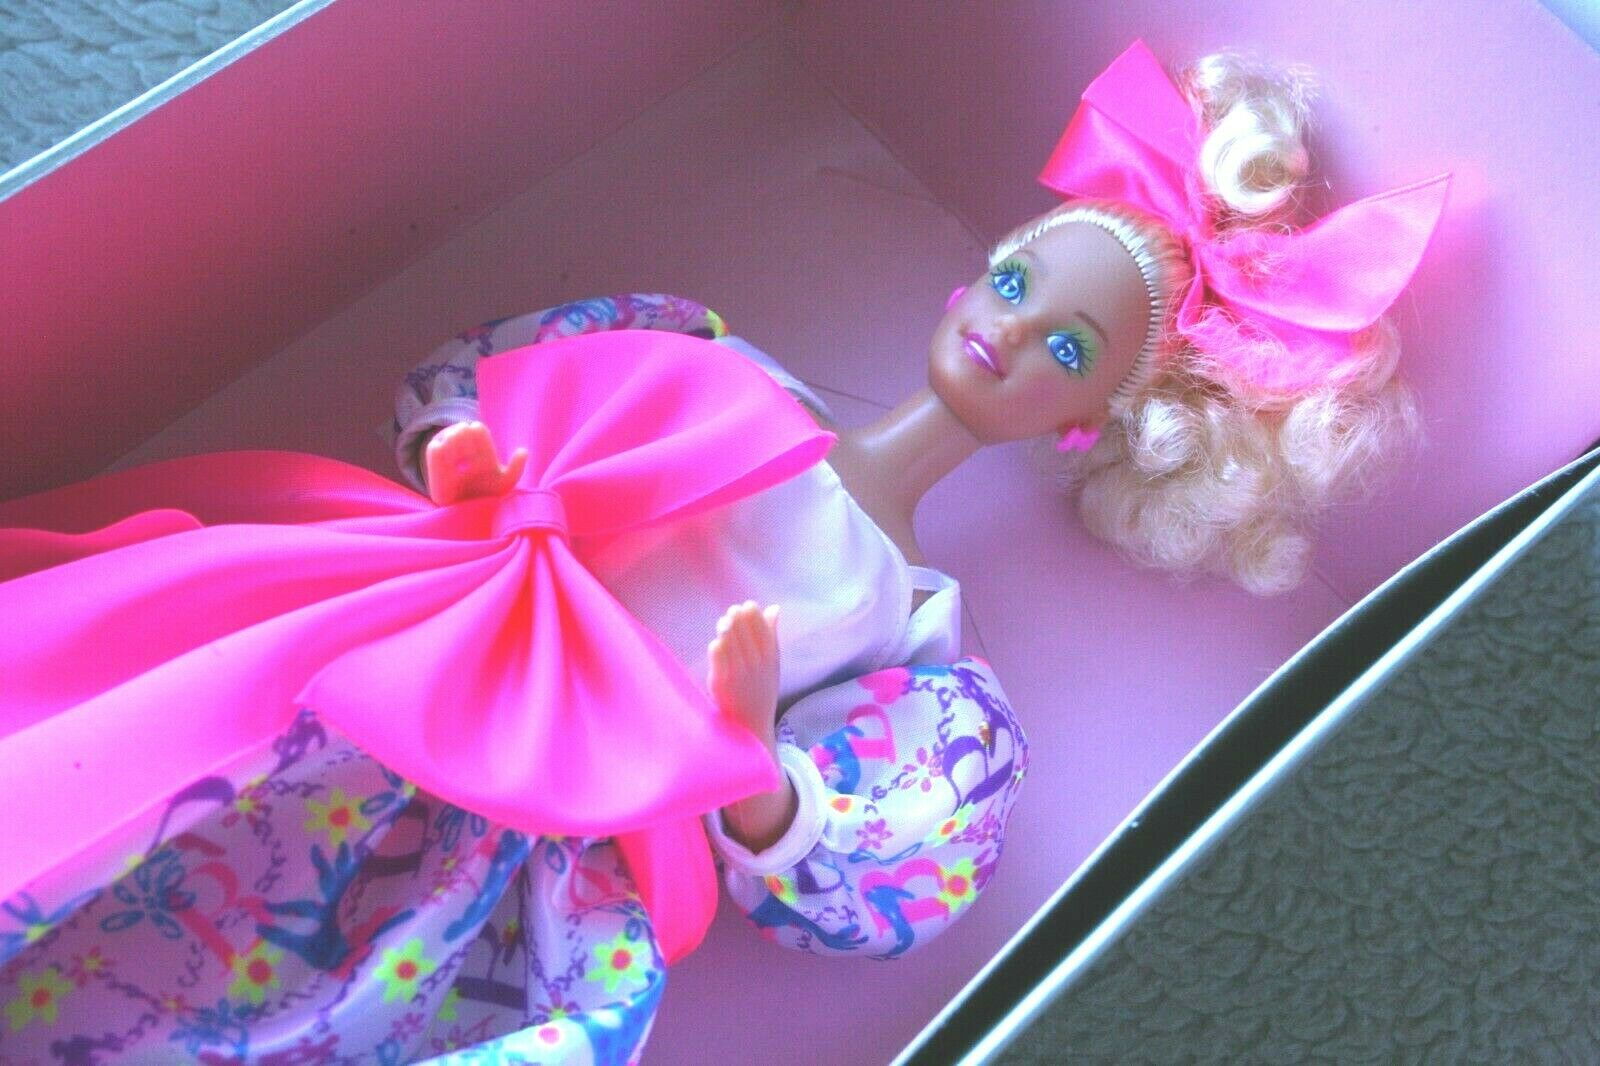 MUÑECA BARBIE STYLE DOLL, 1990  SPECIAL LIMITED EDITION  BRAND NEW IN BOX, OS